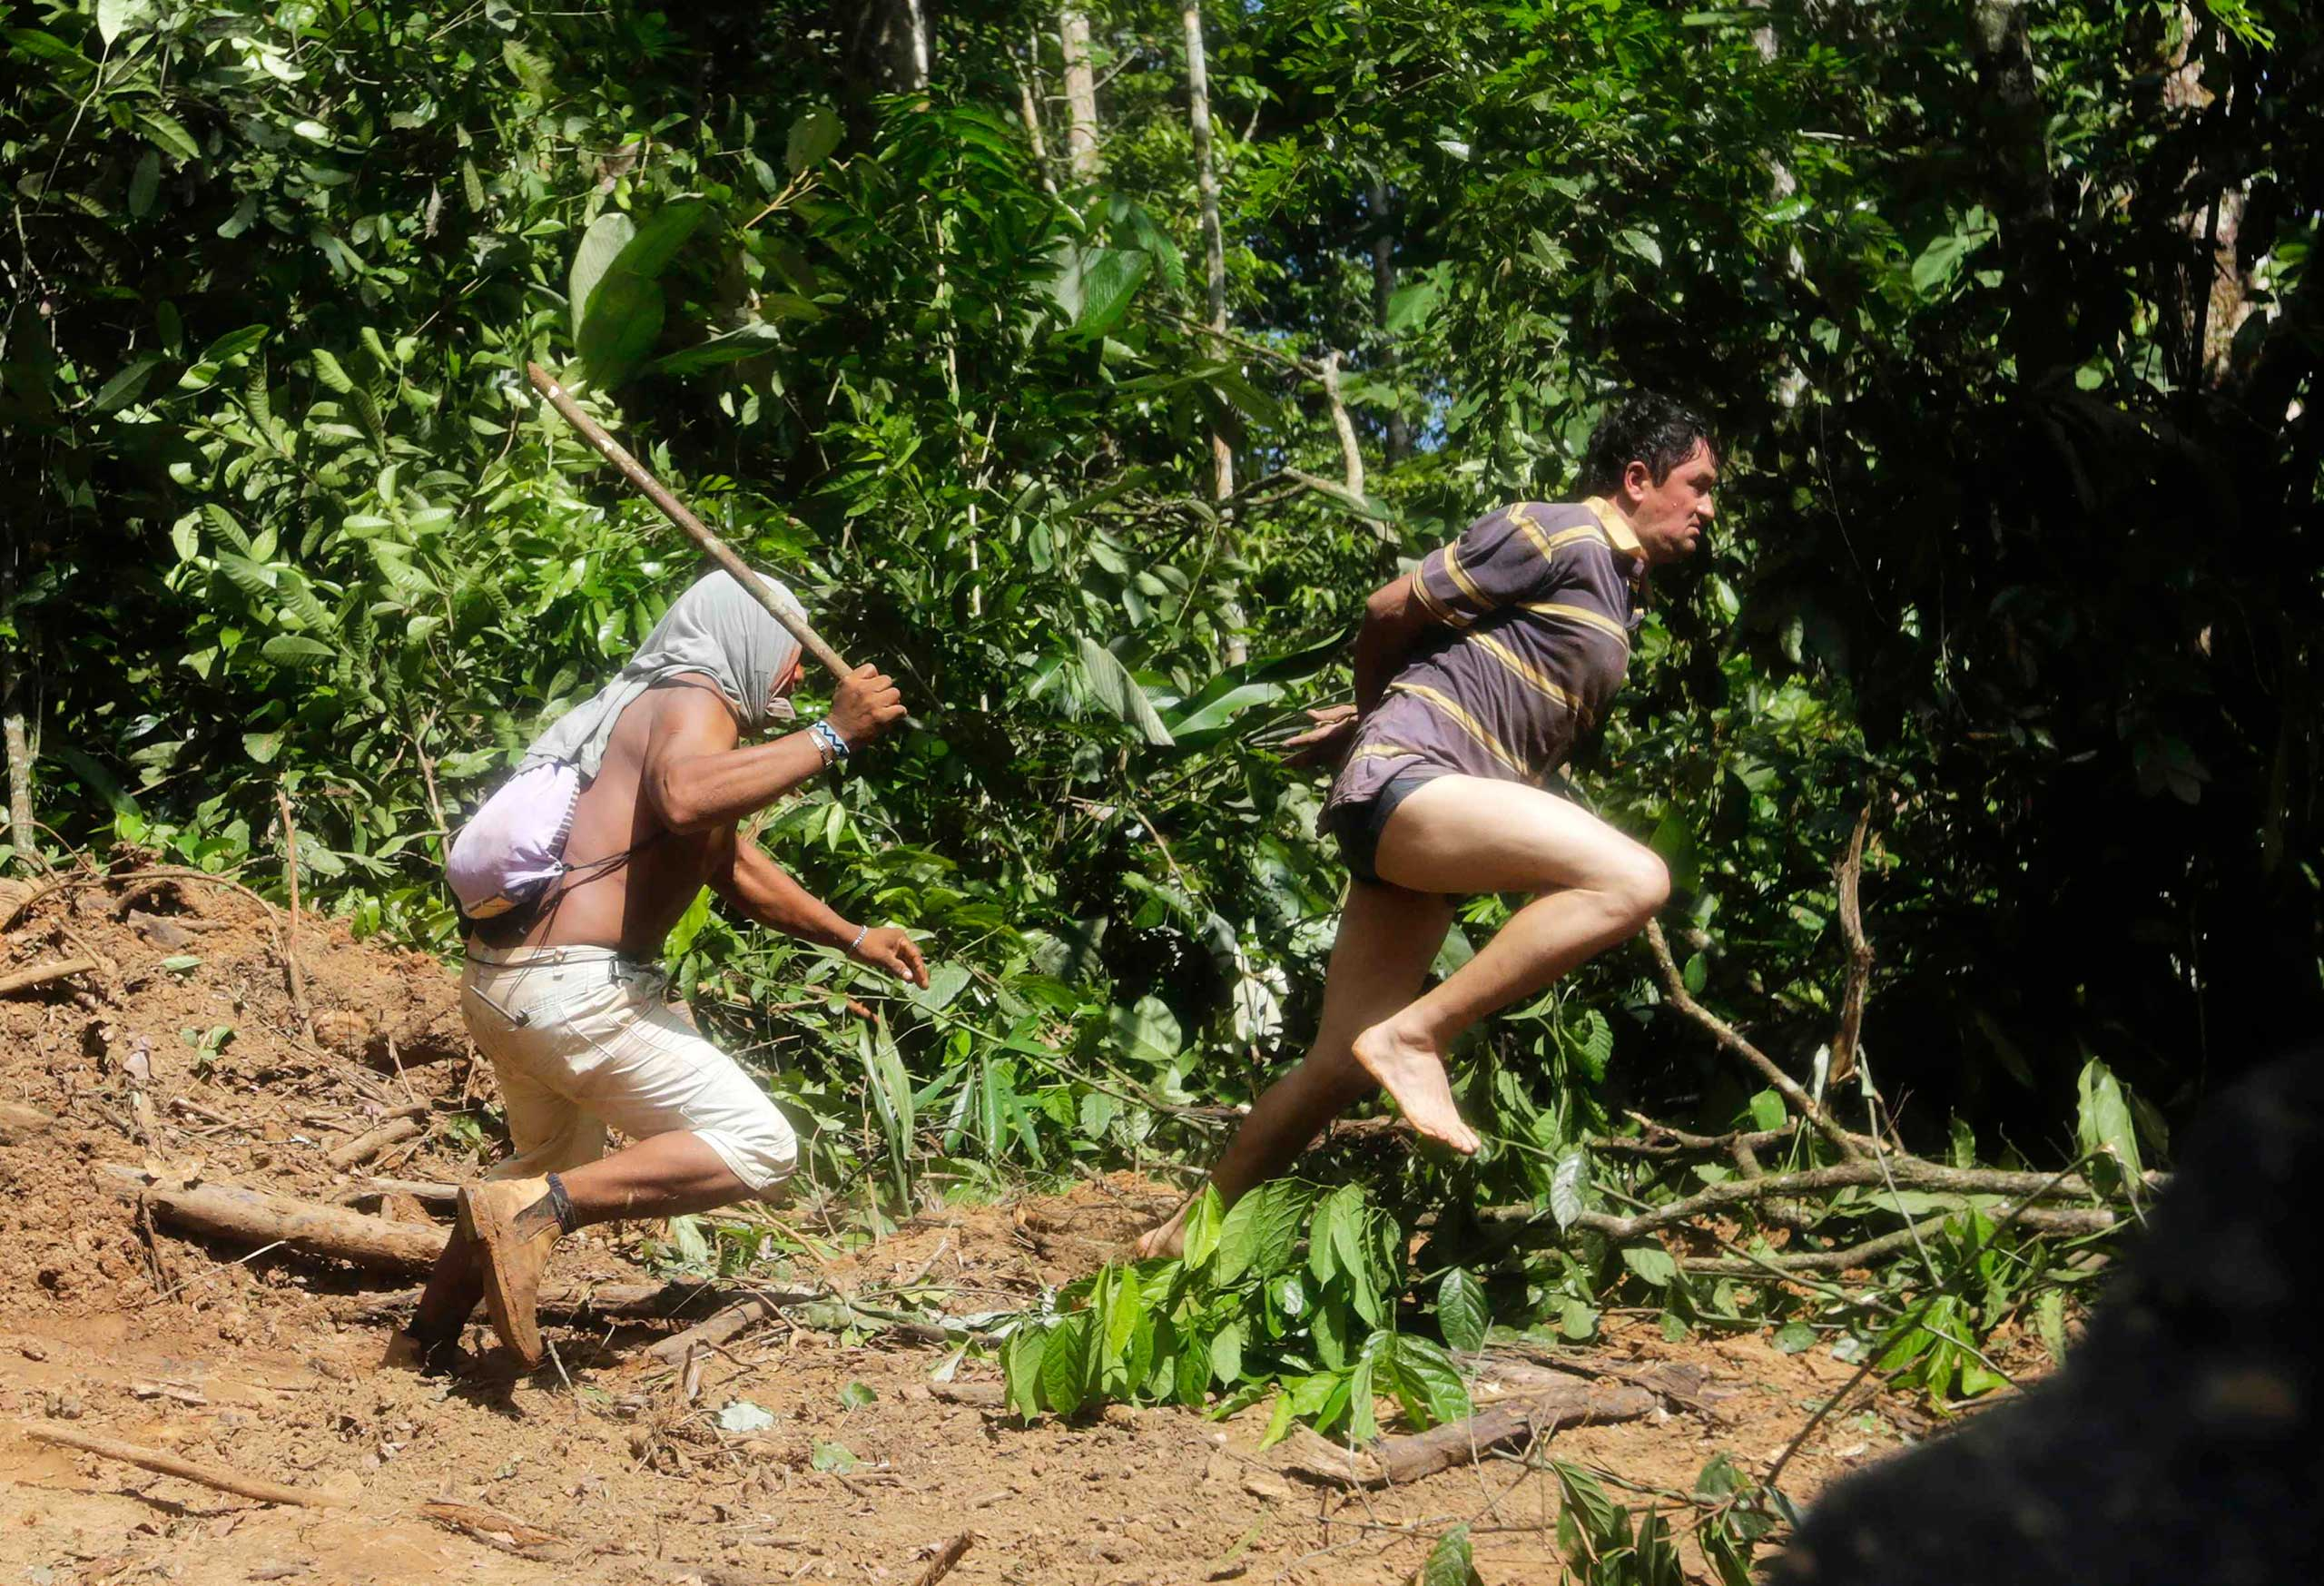 A Ka'apor warrior chases a logger who tried to escape after he was captured during a jungle expedition to search for and expel loggers from the Alto Turiacu Indian territory, northeast of Maranhao state, Amazon basin, August 7, 2014.